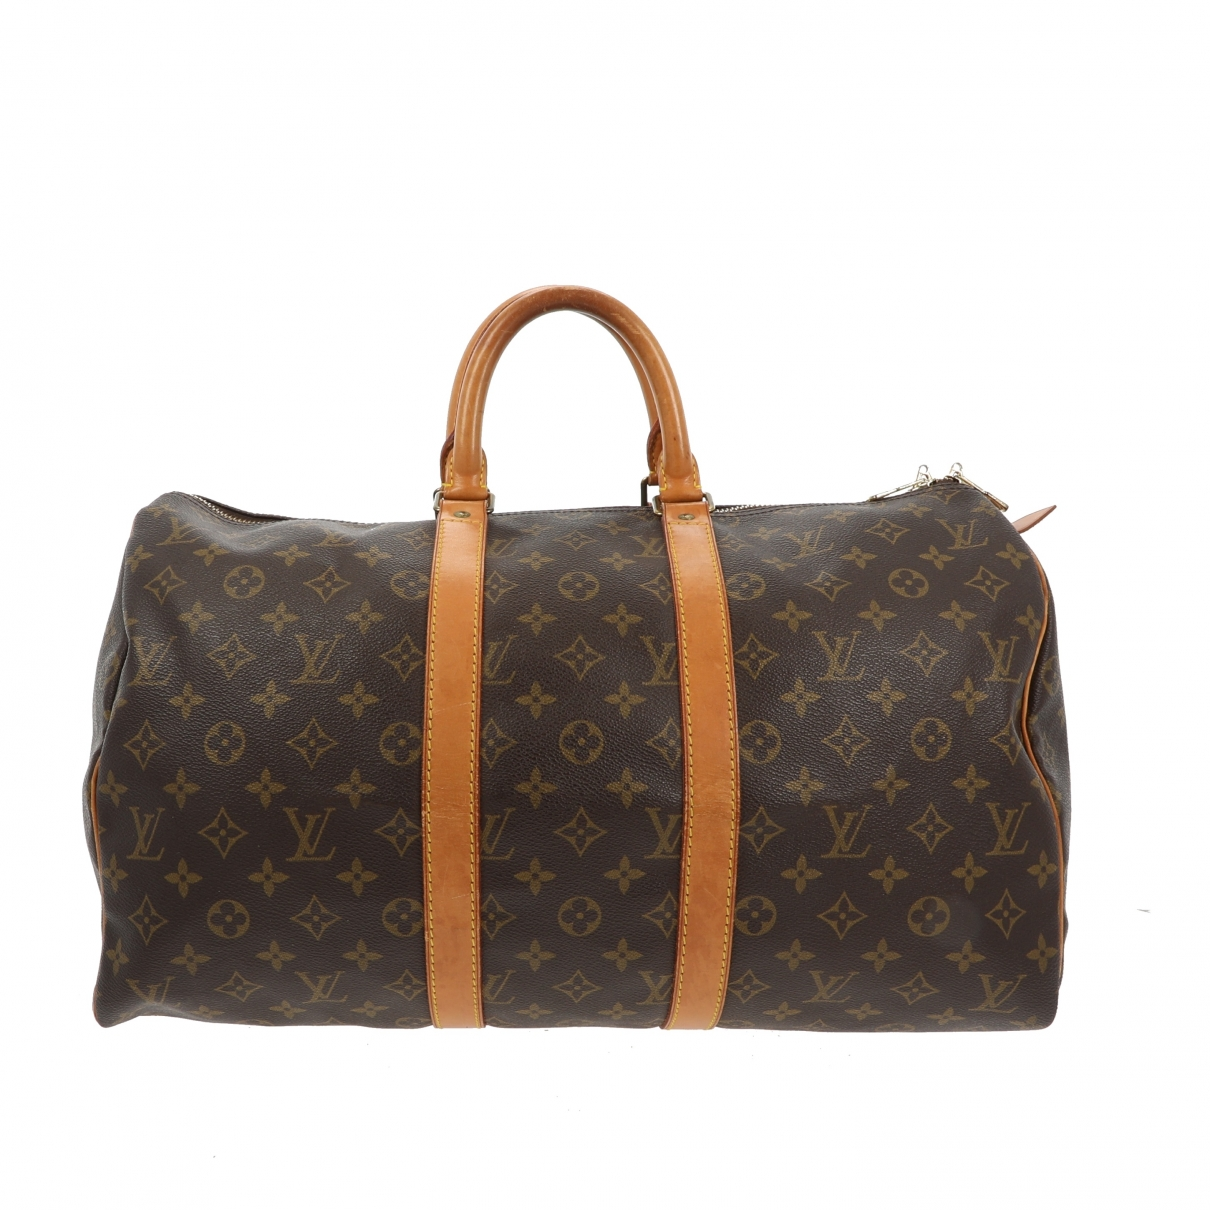 Louis Vuitton Keepall Reisetasche in  Braun Leinen